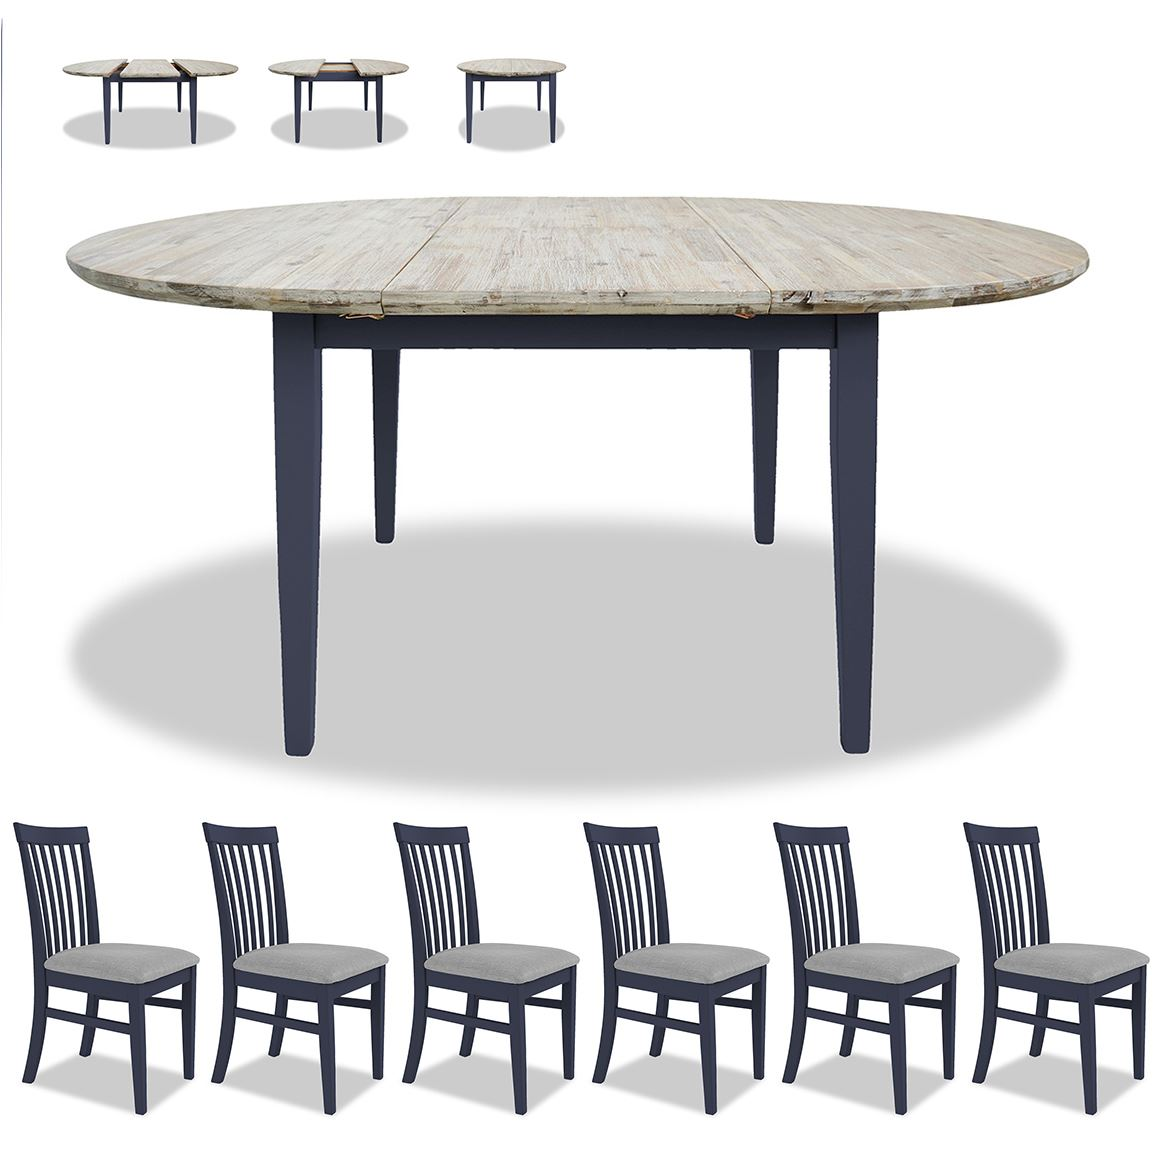 Florence oval extending dining table and 6 chairs.Wooden ...